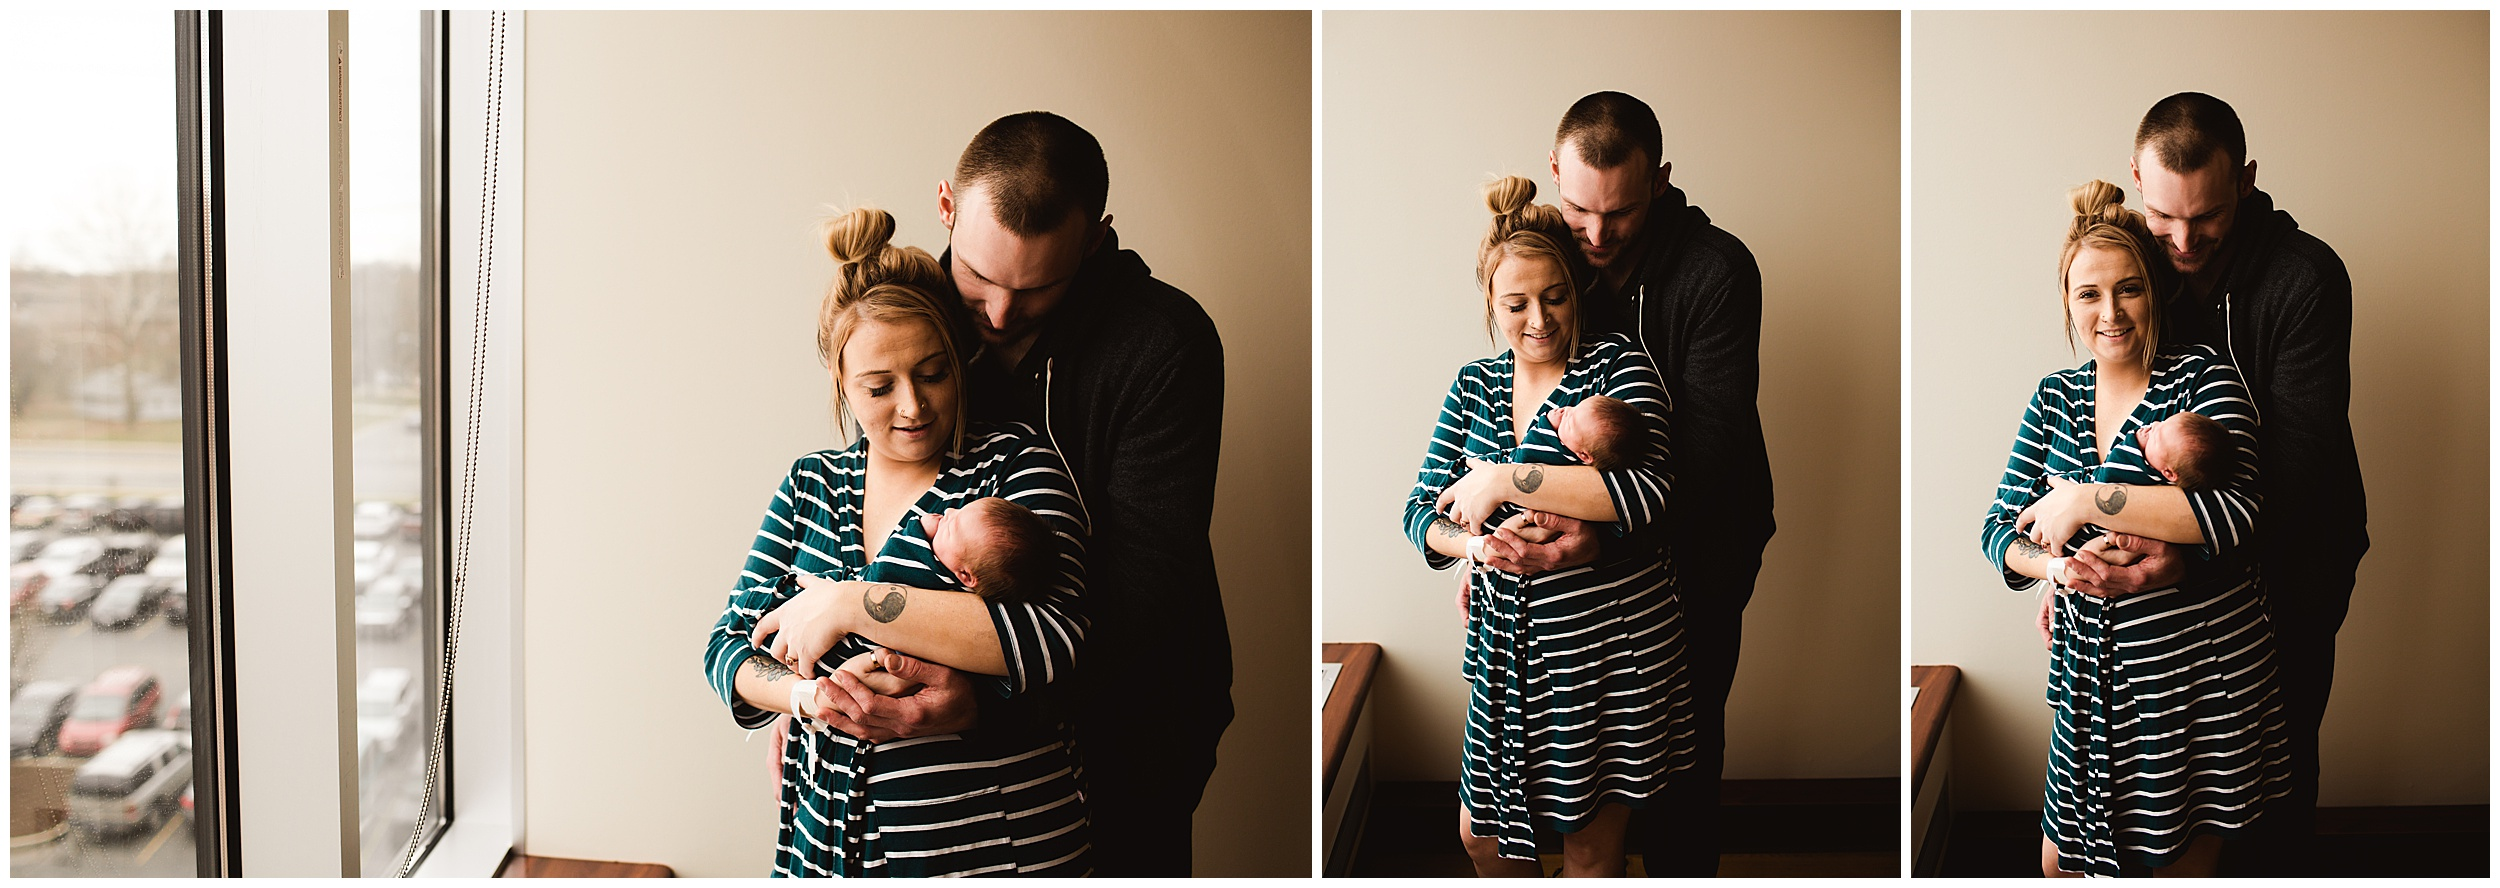 Indianapolis Family Photographer_Kelli White Photography_IG_0130.jpg